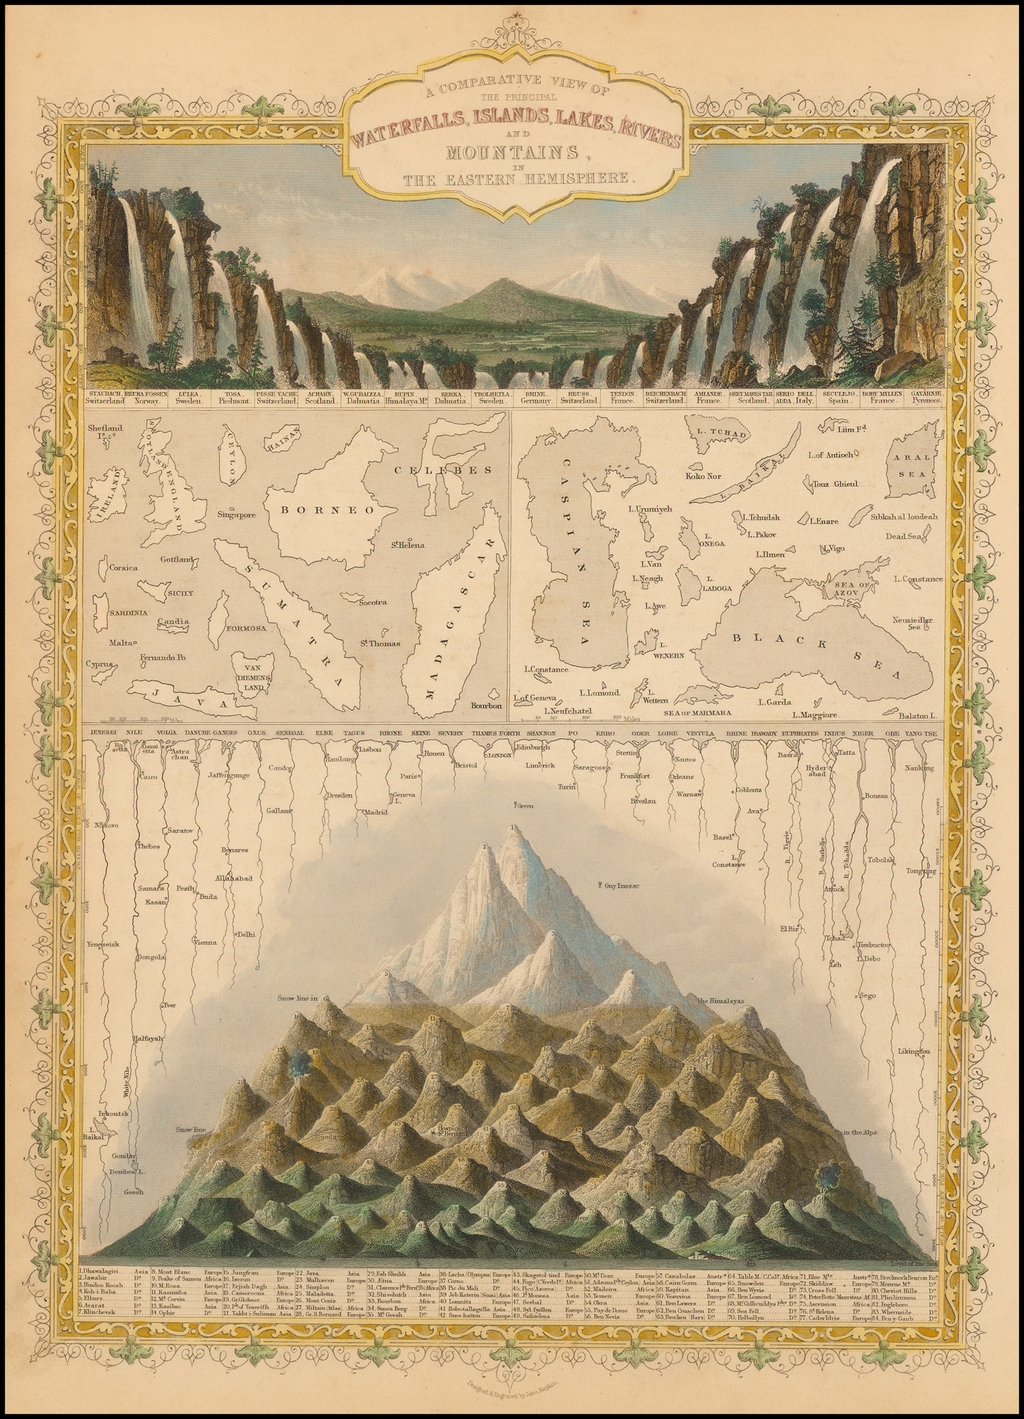 A Comparative View of the Principal Waterfalls, Islands, Lakes, Rivers and Mountains in The Western Hemisphere By John Tallis